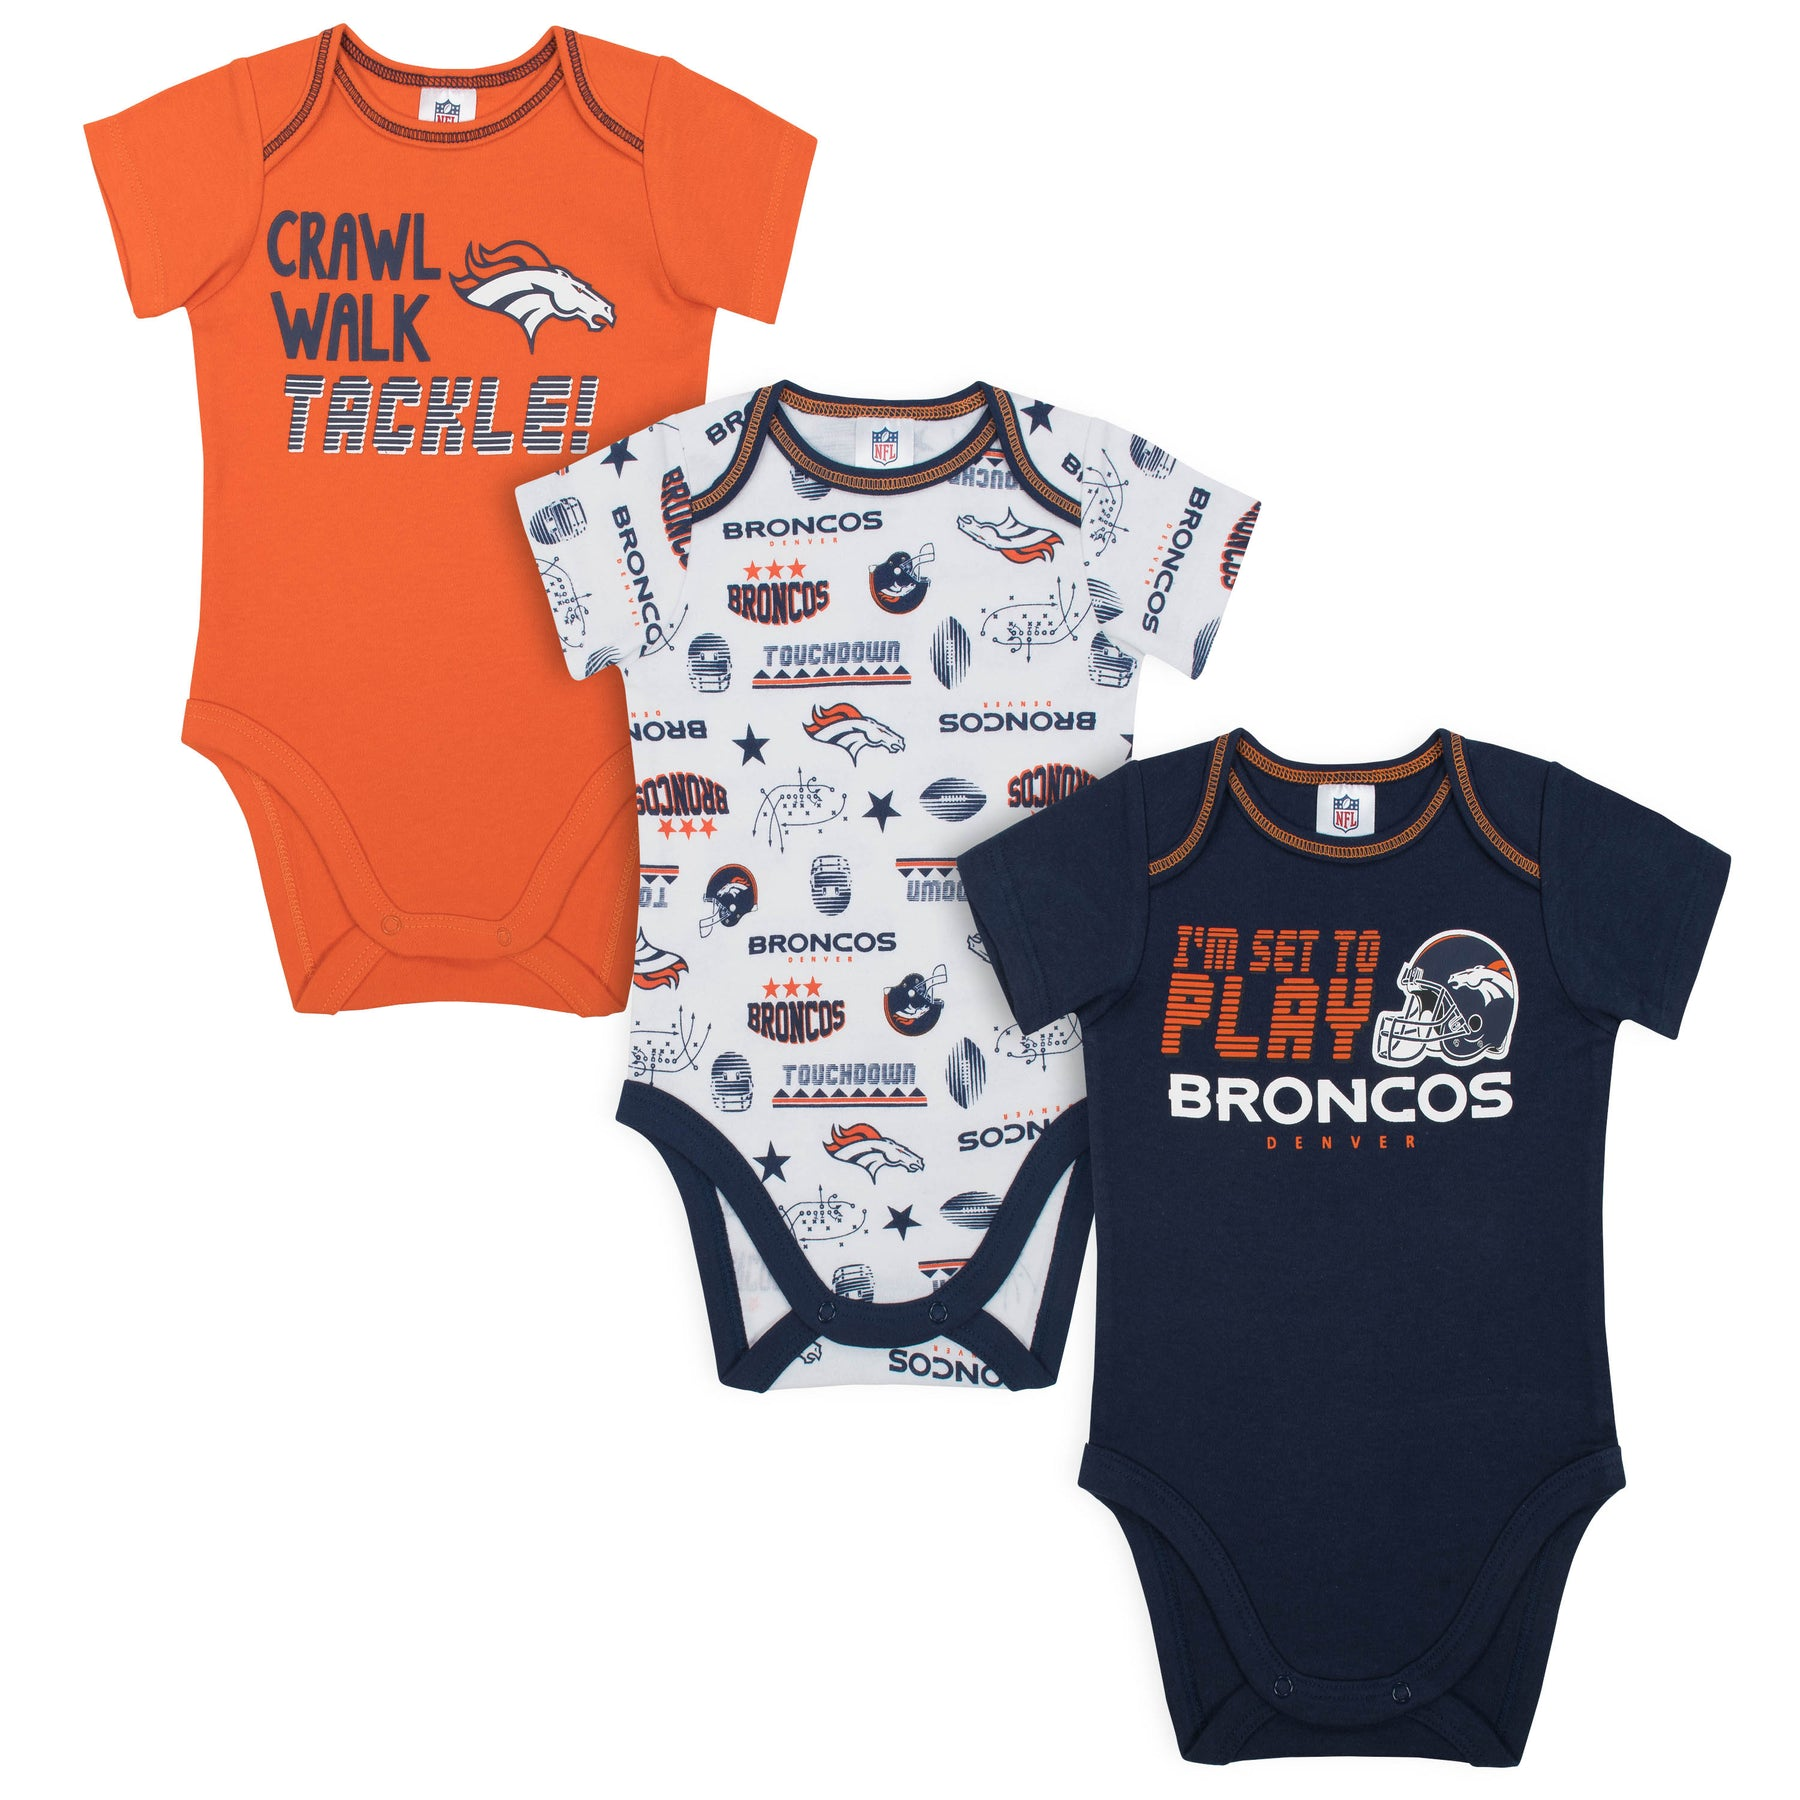 b4faf1f24 Broncos All Set To Play 3 Pack Short Sleeved Onesies Bodysuits ...